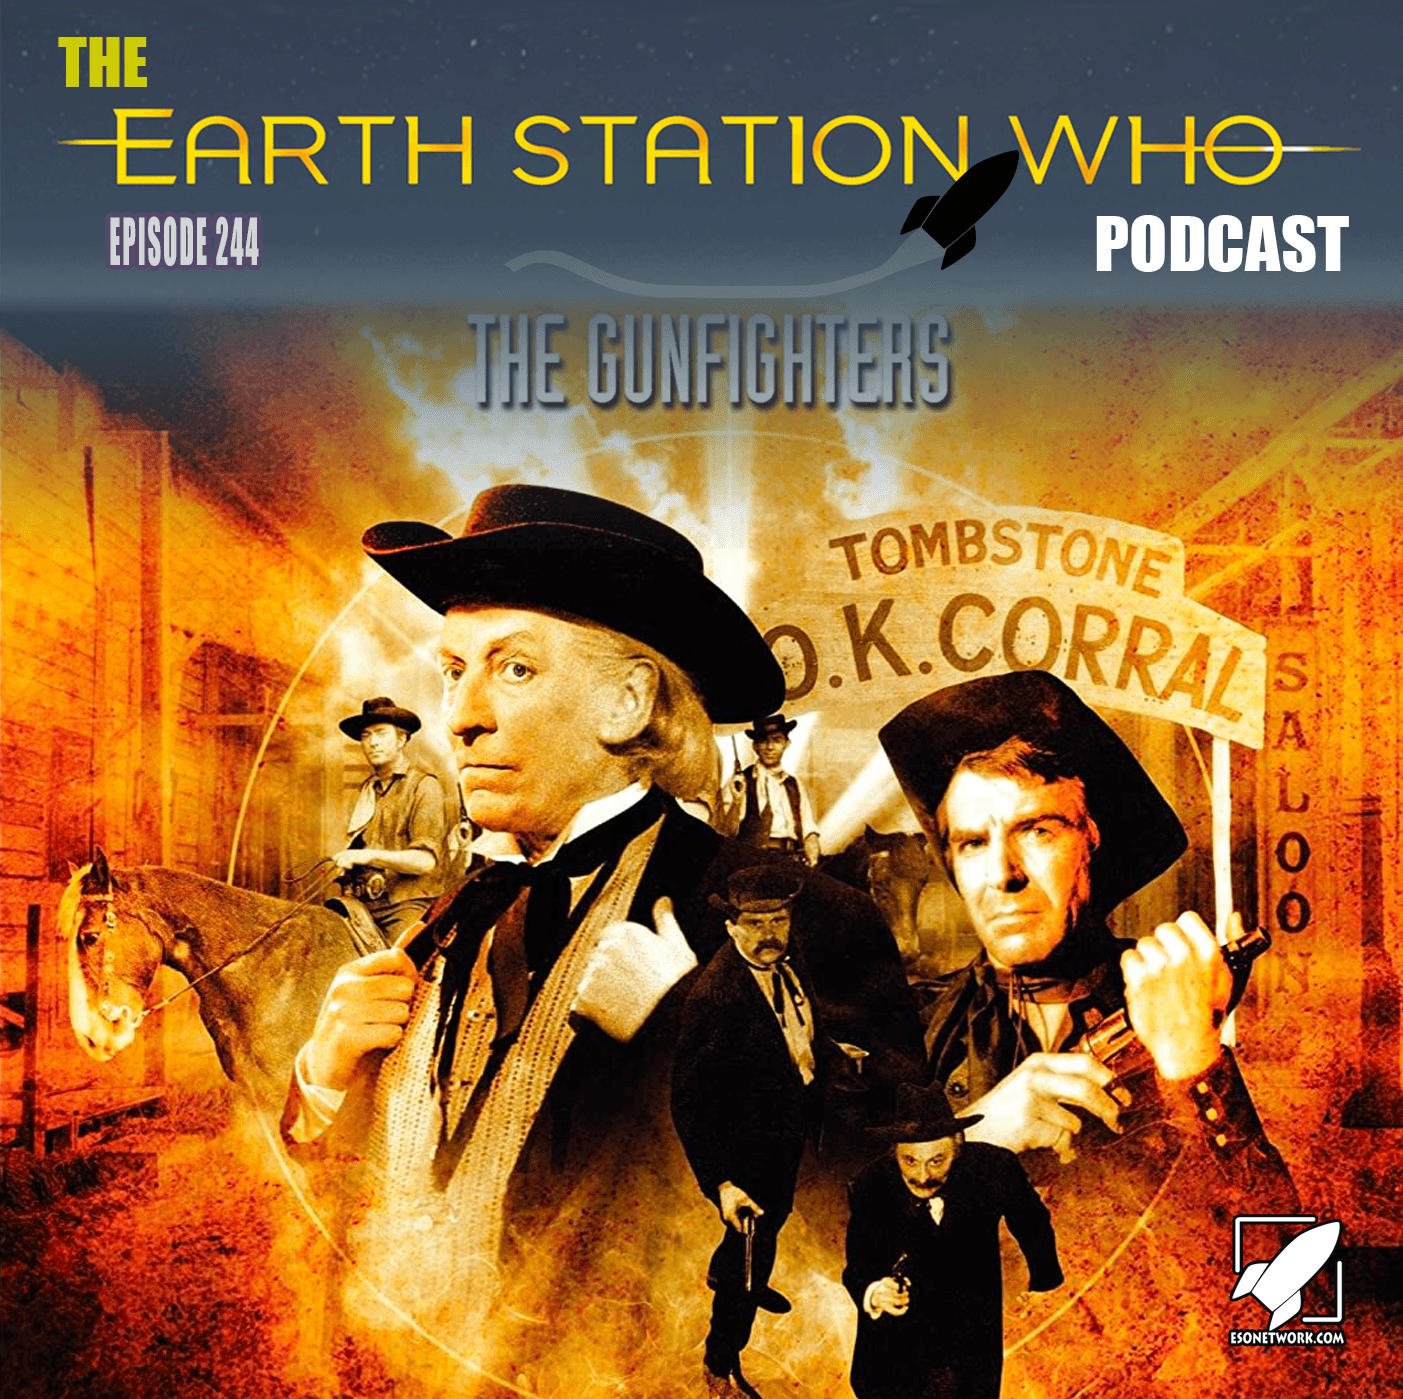 The Earth Station Who Podcast Ep 244